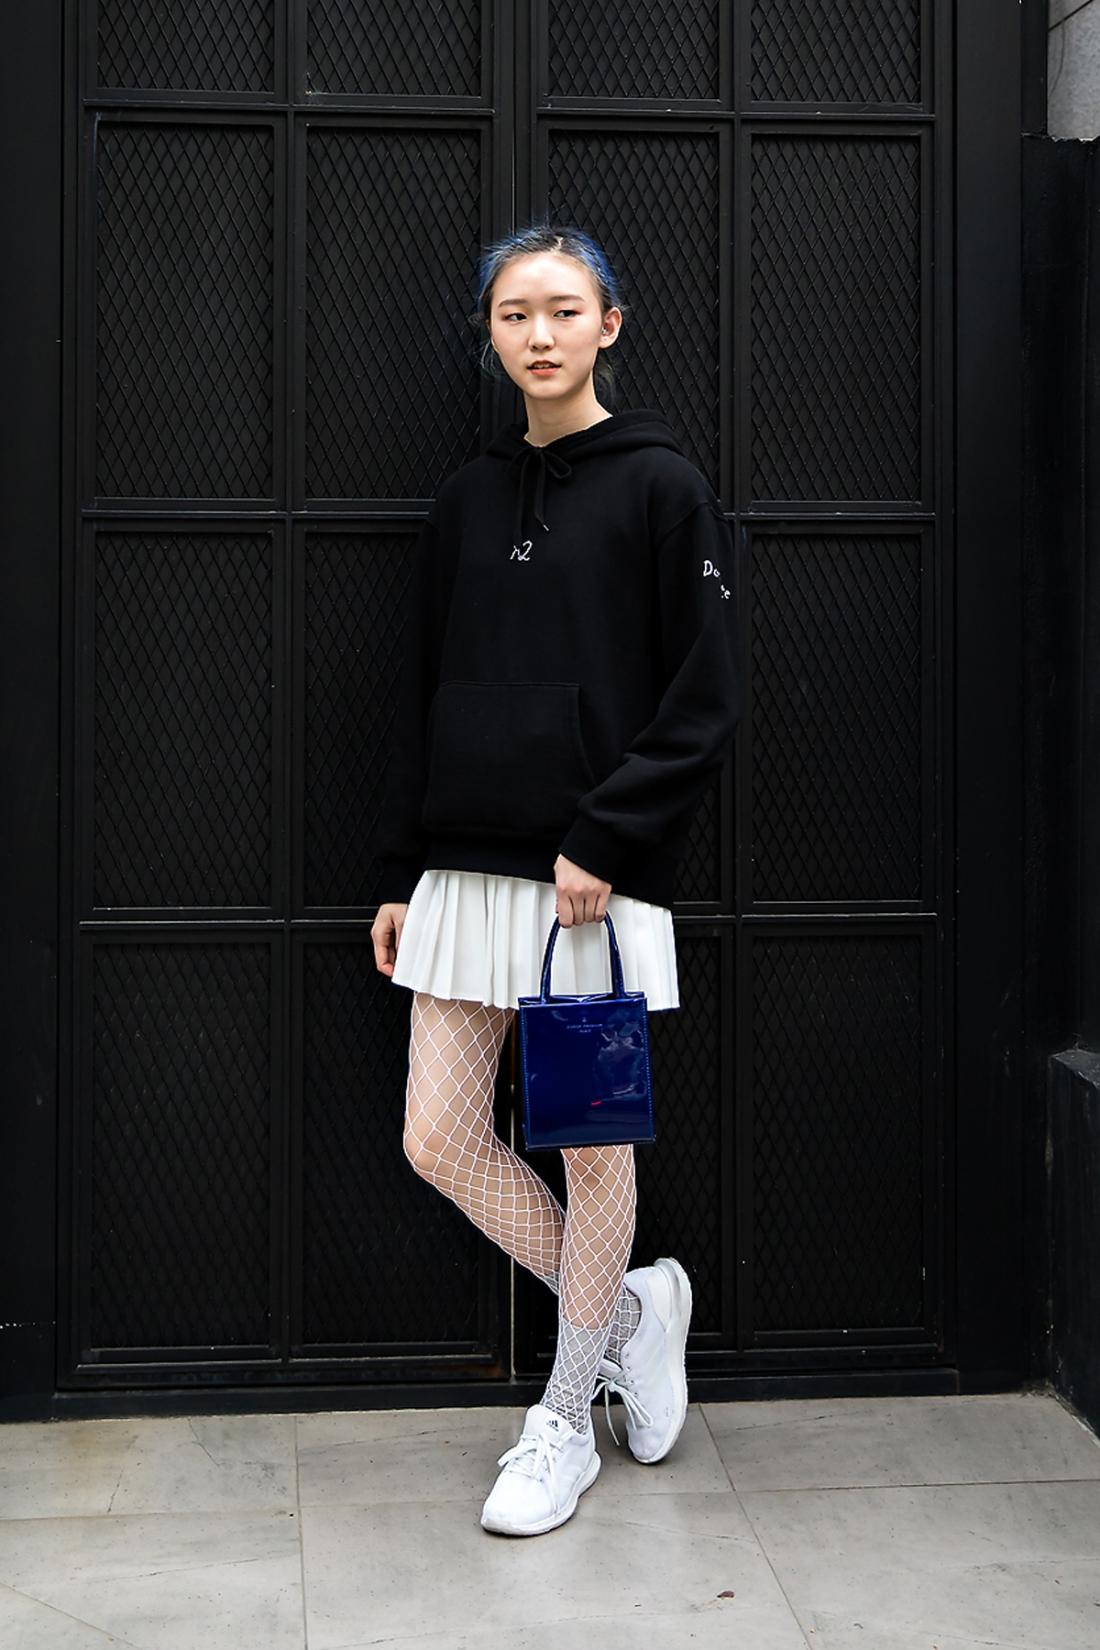 Choi Hyeryung, Street Fashion 2017 in Seoul